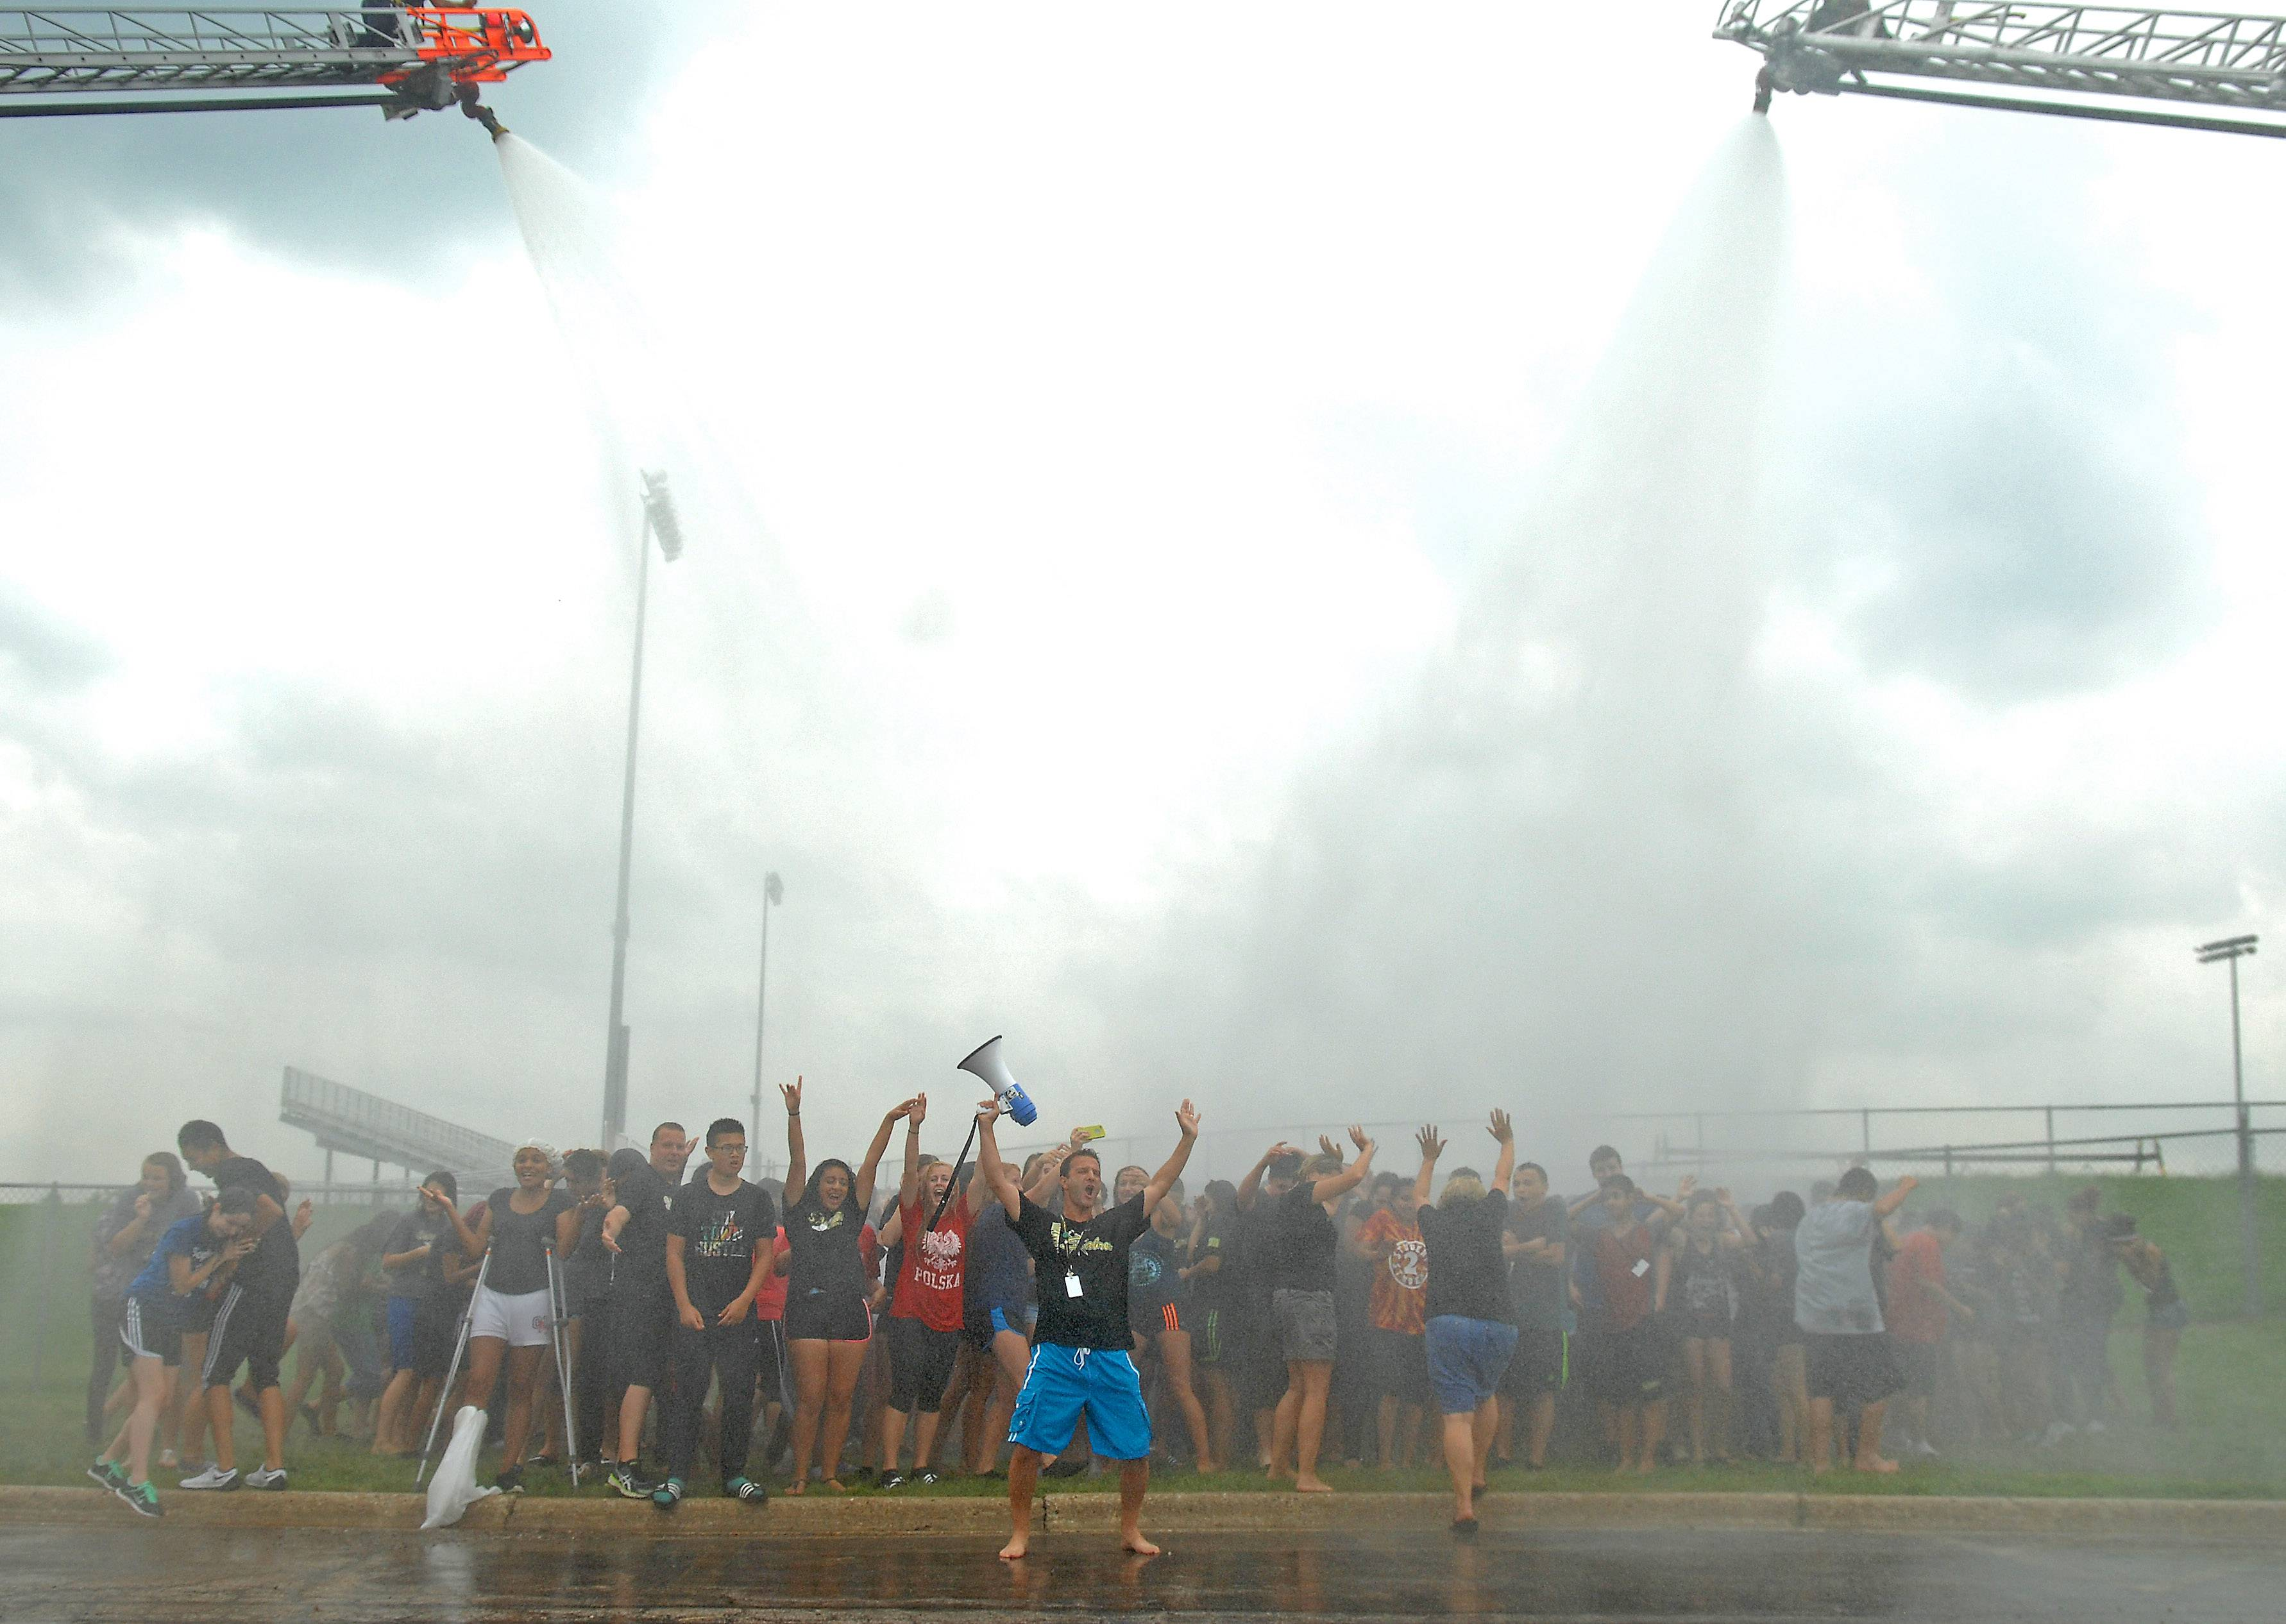 About 400 Streamwood High School AVID students and teachers, including Mike Earone, with megaphone, are doused by Streamwood firefighters Friday as they accept the ALS Ice Bucket Challenge issued to them by Principal Terri Lozier. The students subsequently called out the football team to accept their ALS challenge. AVID (Advancement Via Individual Determination) is a college readiness program.